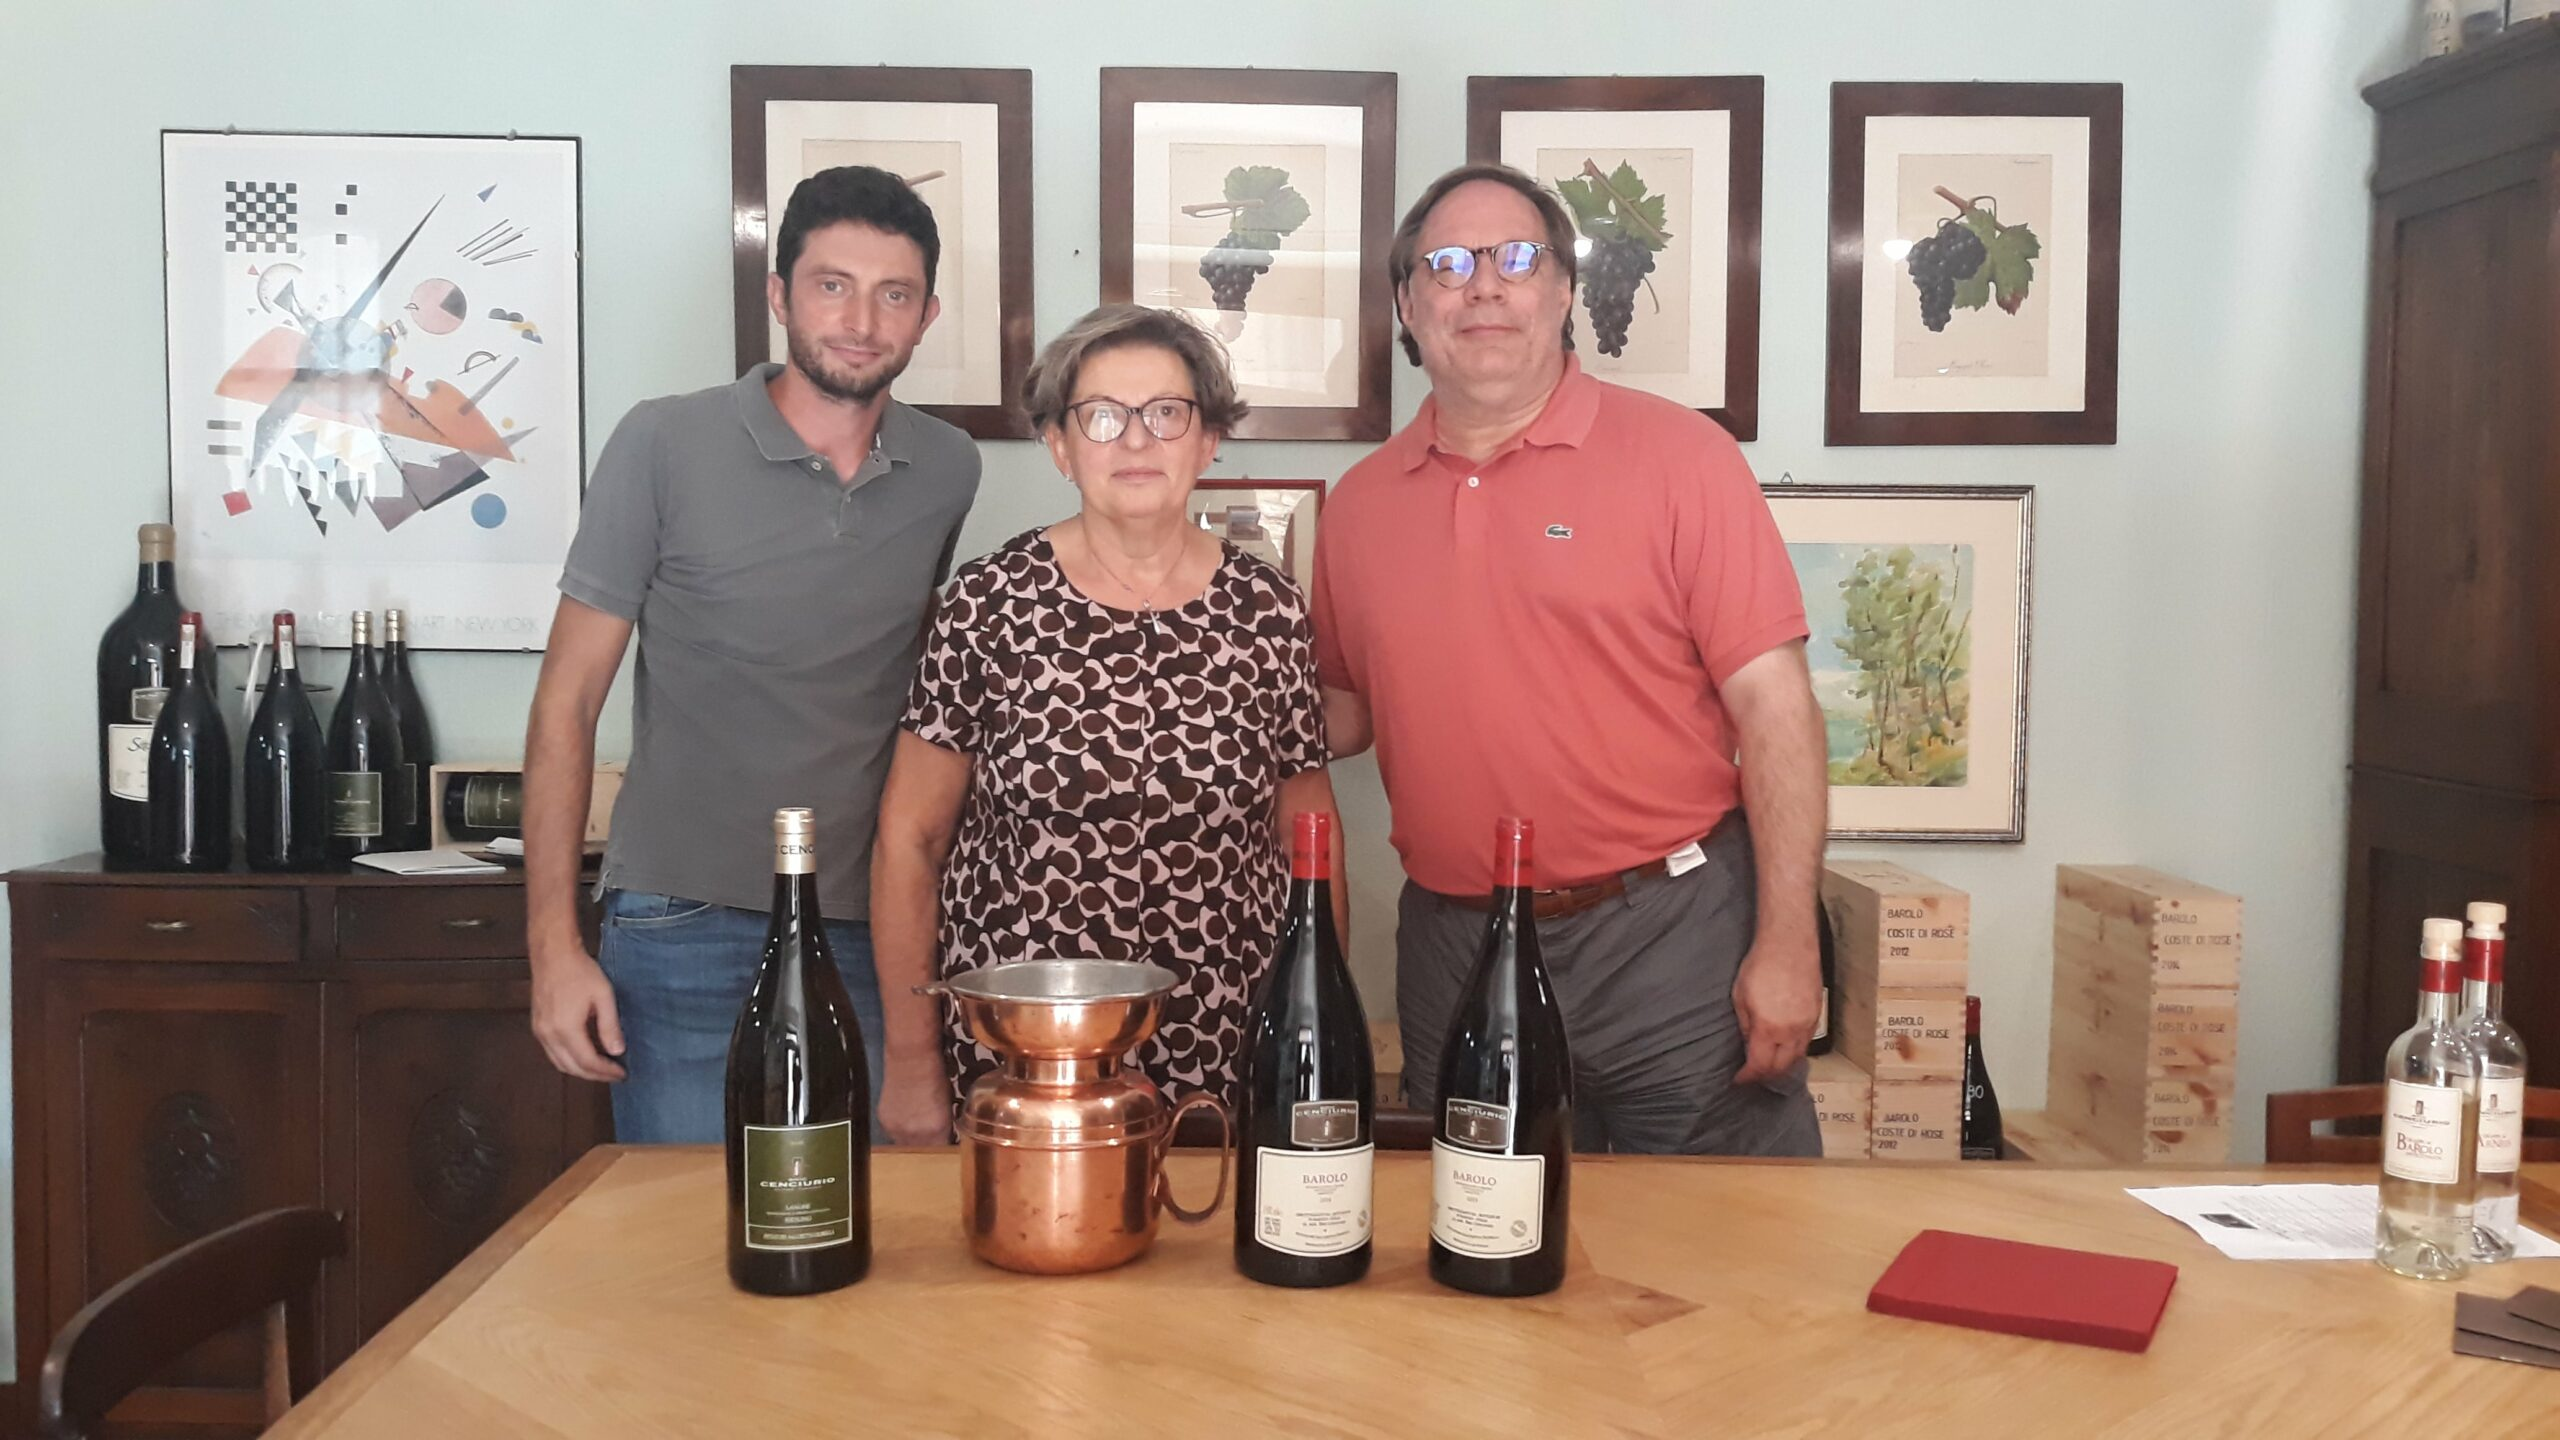 Ian-tasting-at-Bric-Cenciurio-in-Barolo-this-July-and-finding-oneof-the-years-most-delicious-sweet-wines-the-Birbet-min-scaled-1-3-1